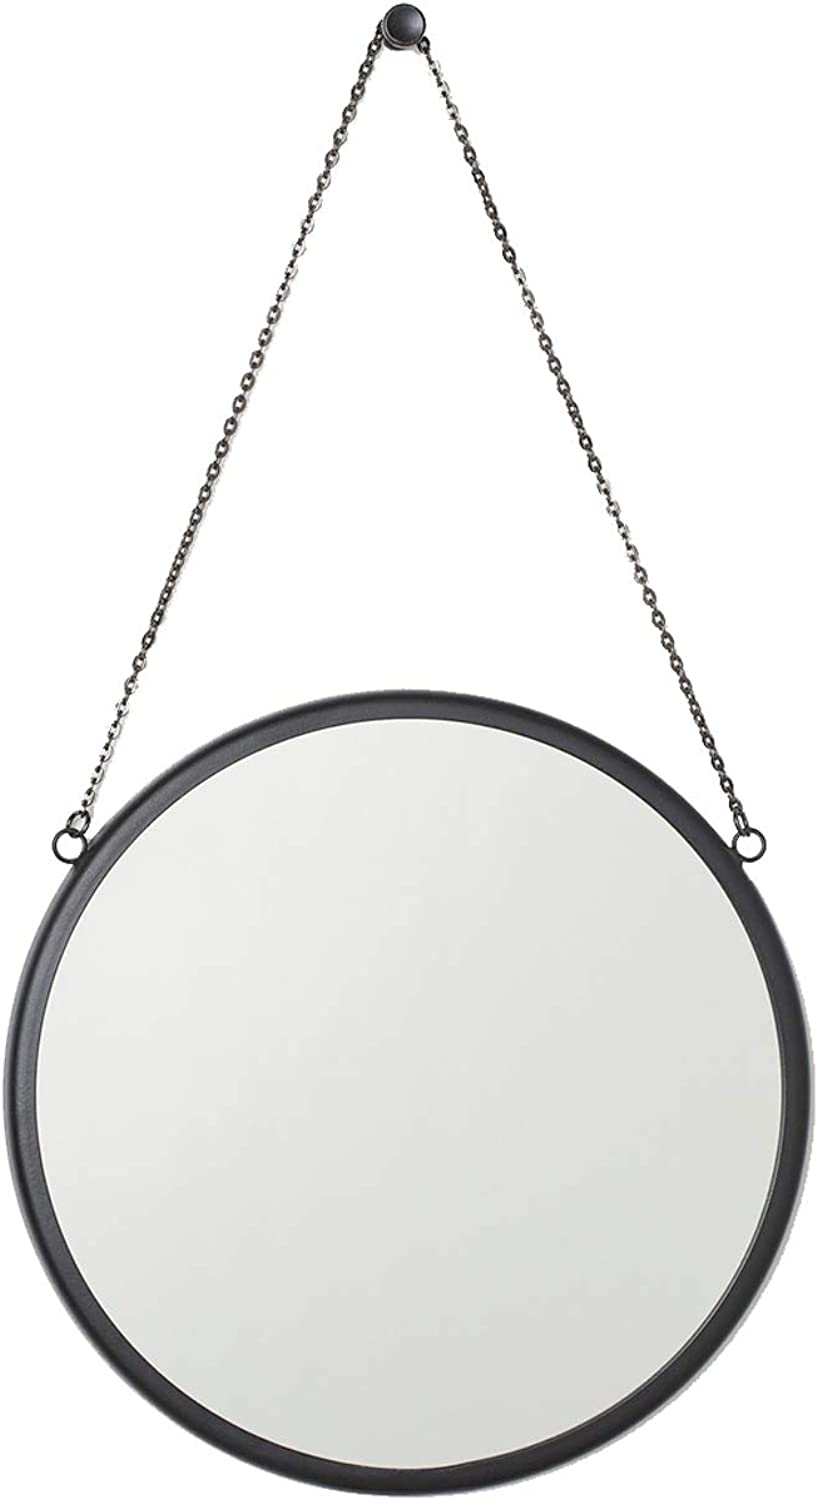 Round Wall Decorative Mirrors golden 7.9″ Wall Hanging HD Mirror Vanity Make Up Mirror for Home Decor